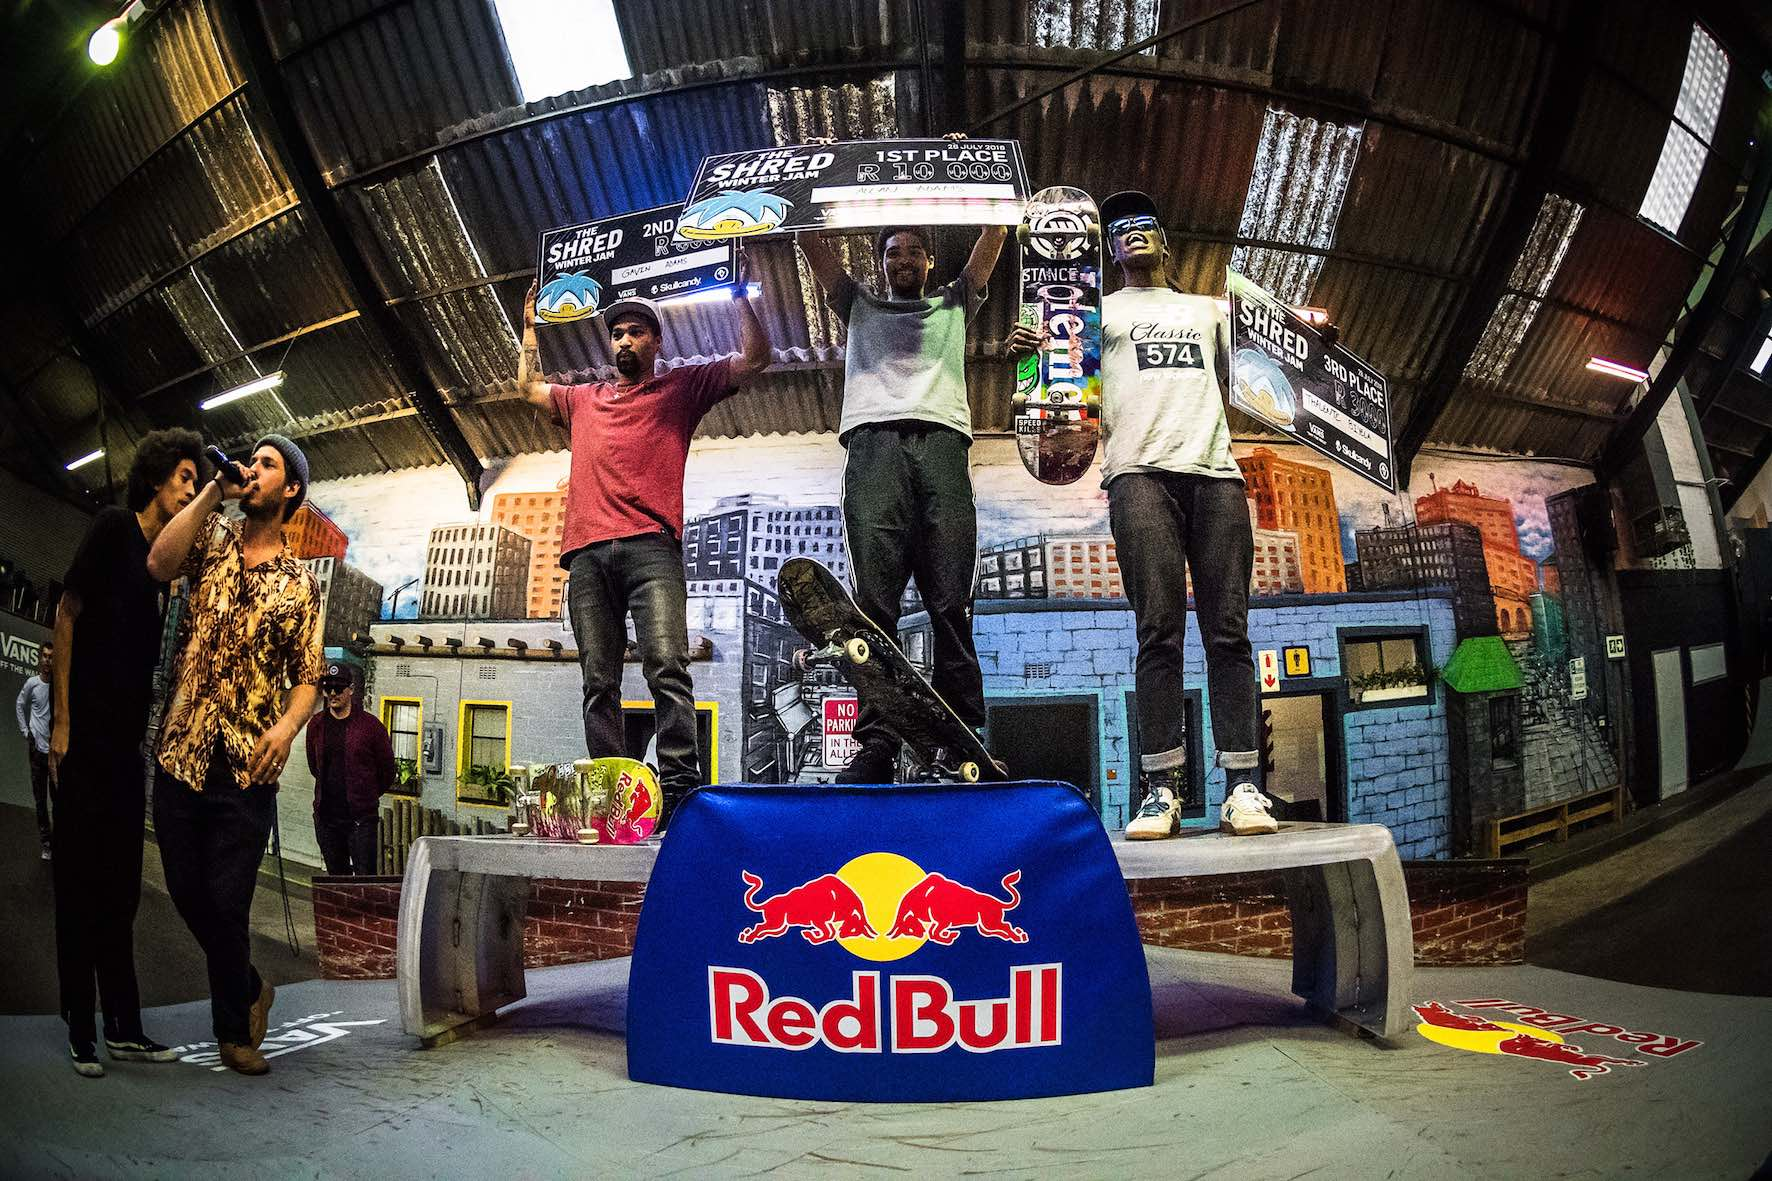 The Shred Winter Jam 2018 podium